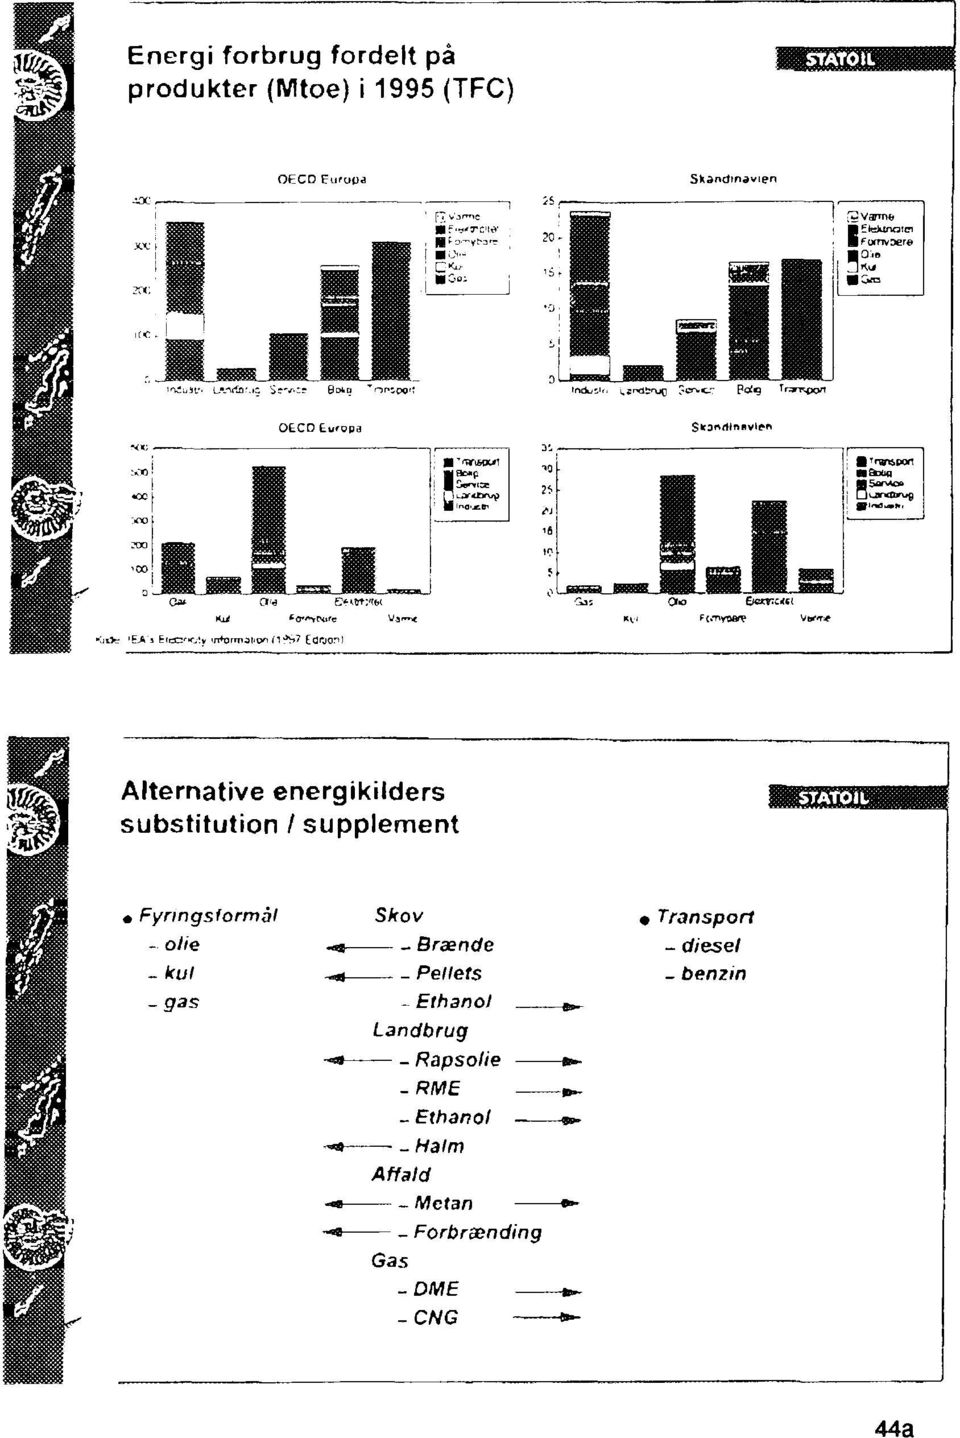 00 *OC jtfc 'EA's EteC-K'jiy in+orniat'(yi H *i7 EOfjOn) po* Alternative energikilders substitution / supplement